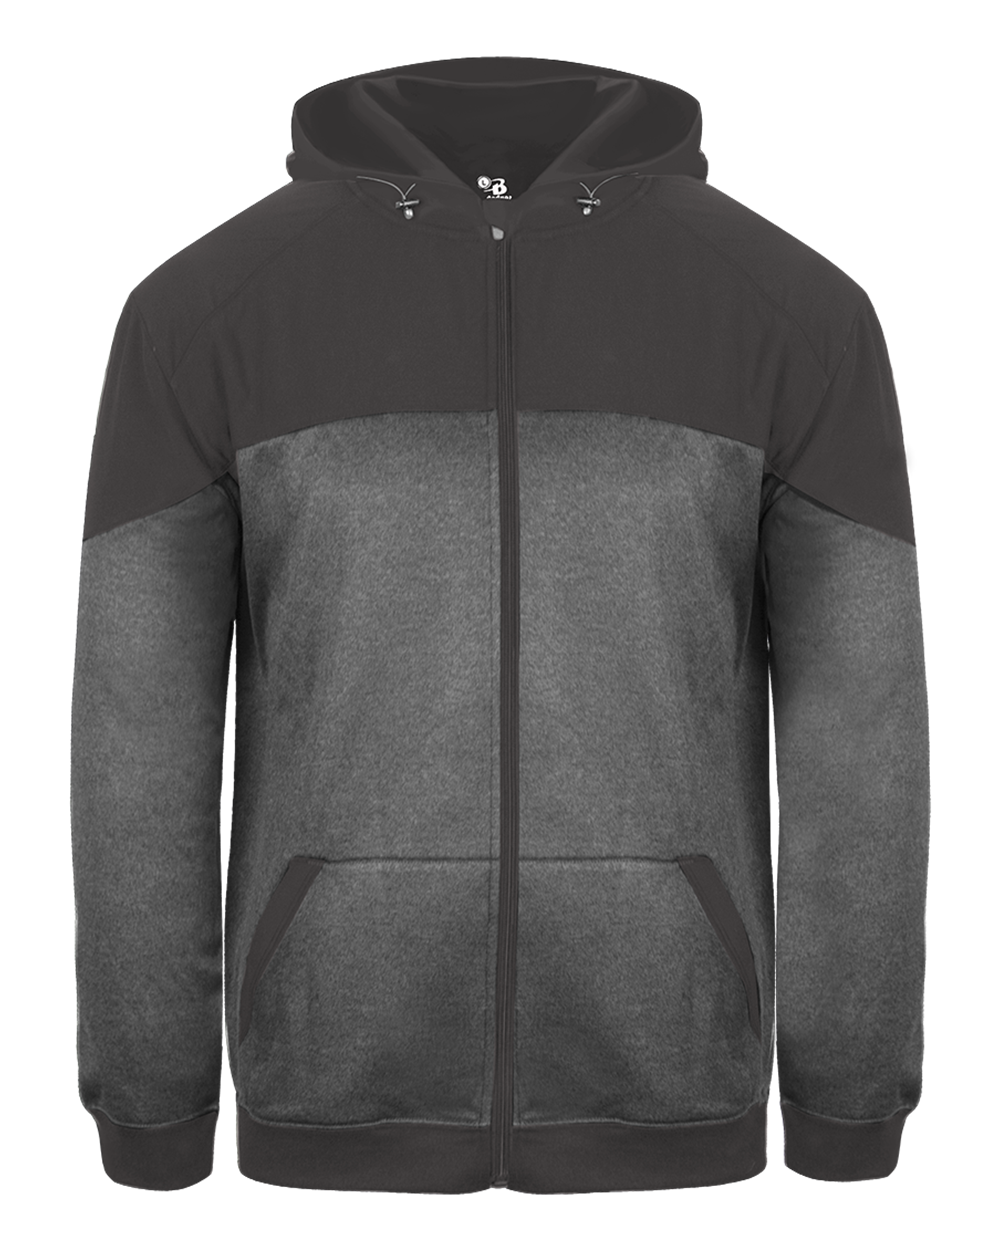 Vindicator Jacket - Steel Heather/Graphite